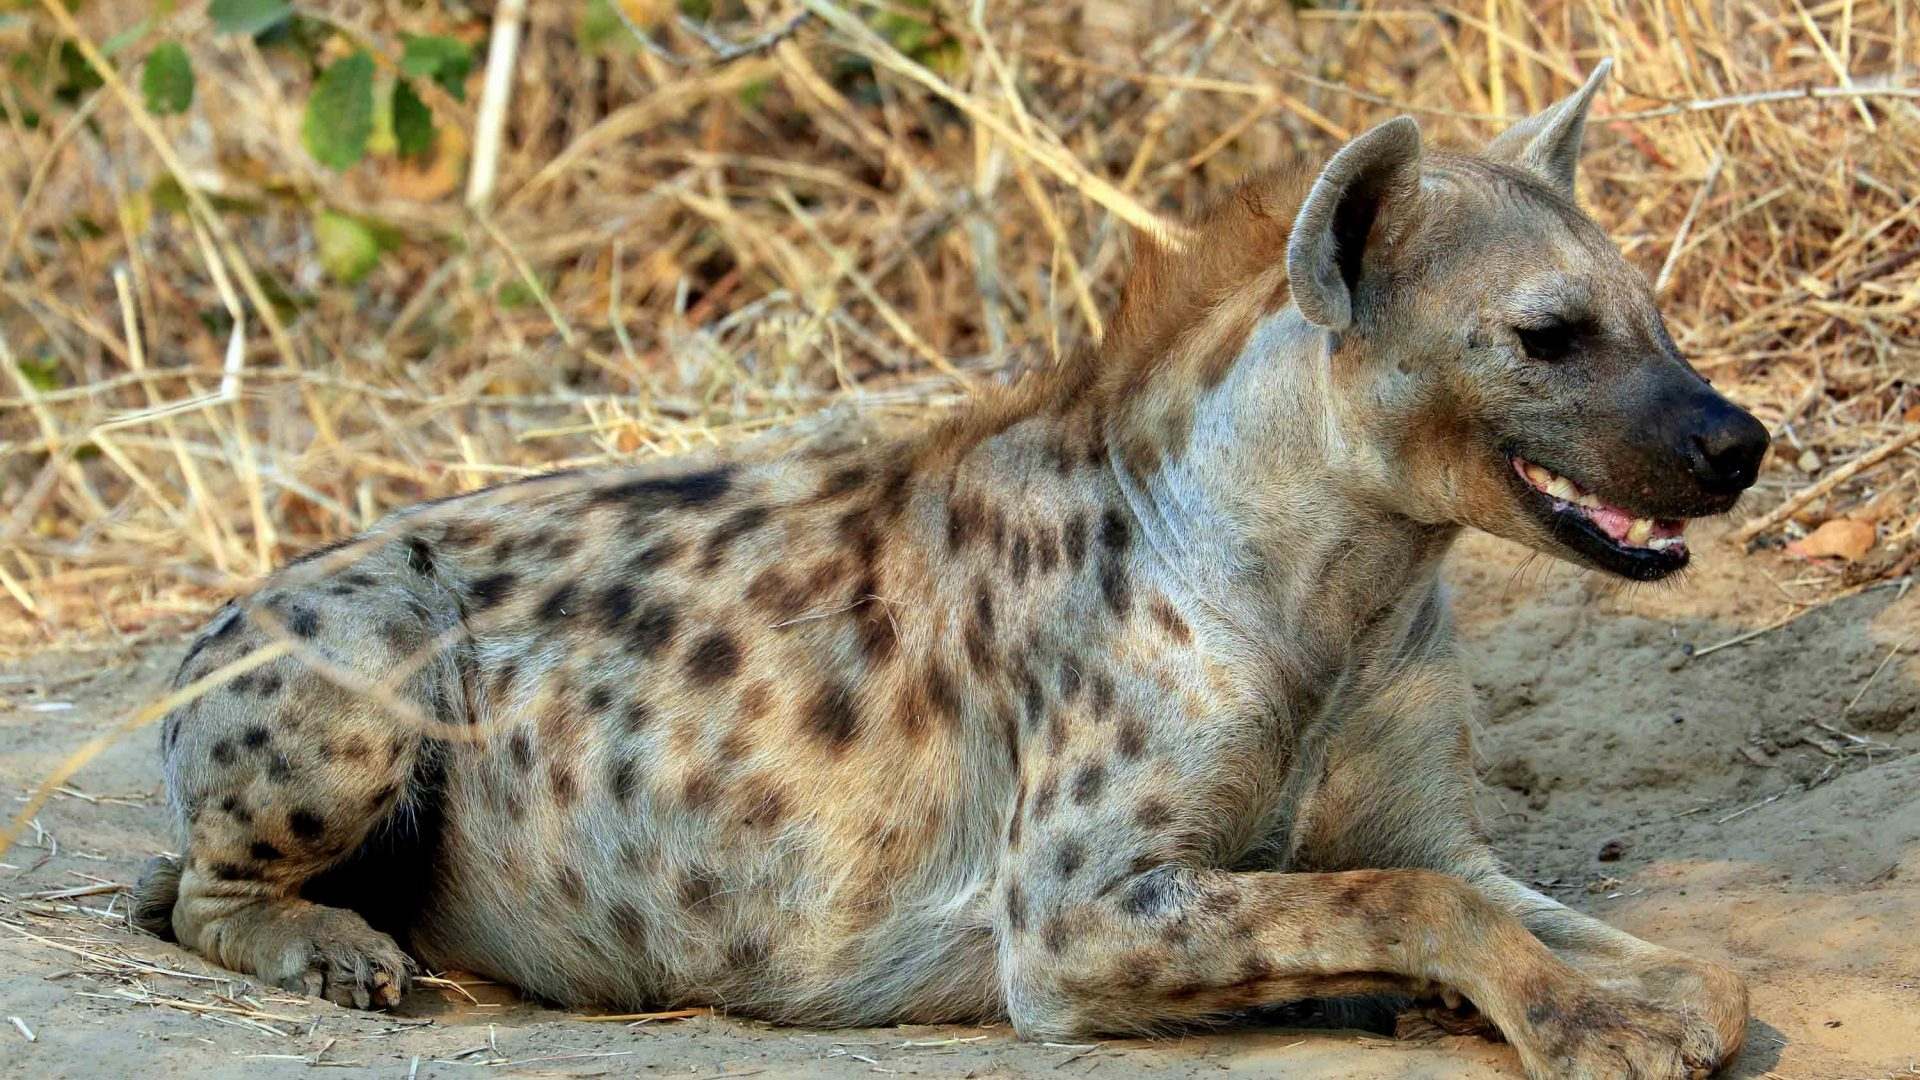 A hyena resting in the late afternoon sunlight.